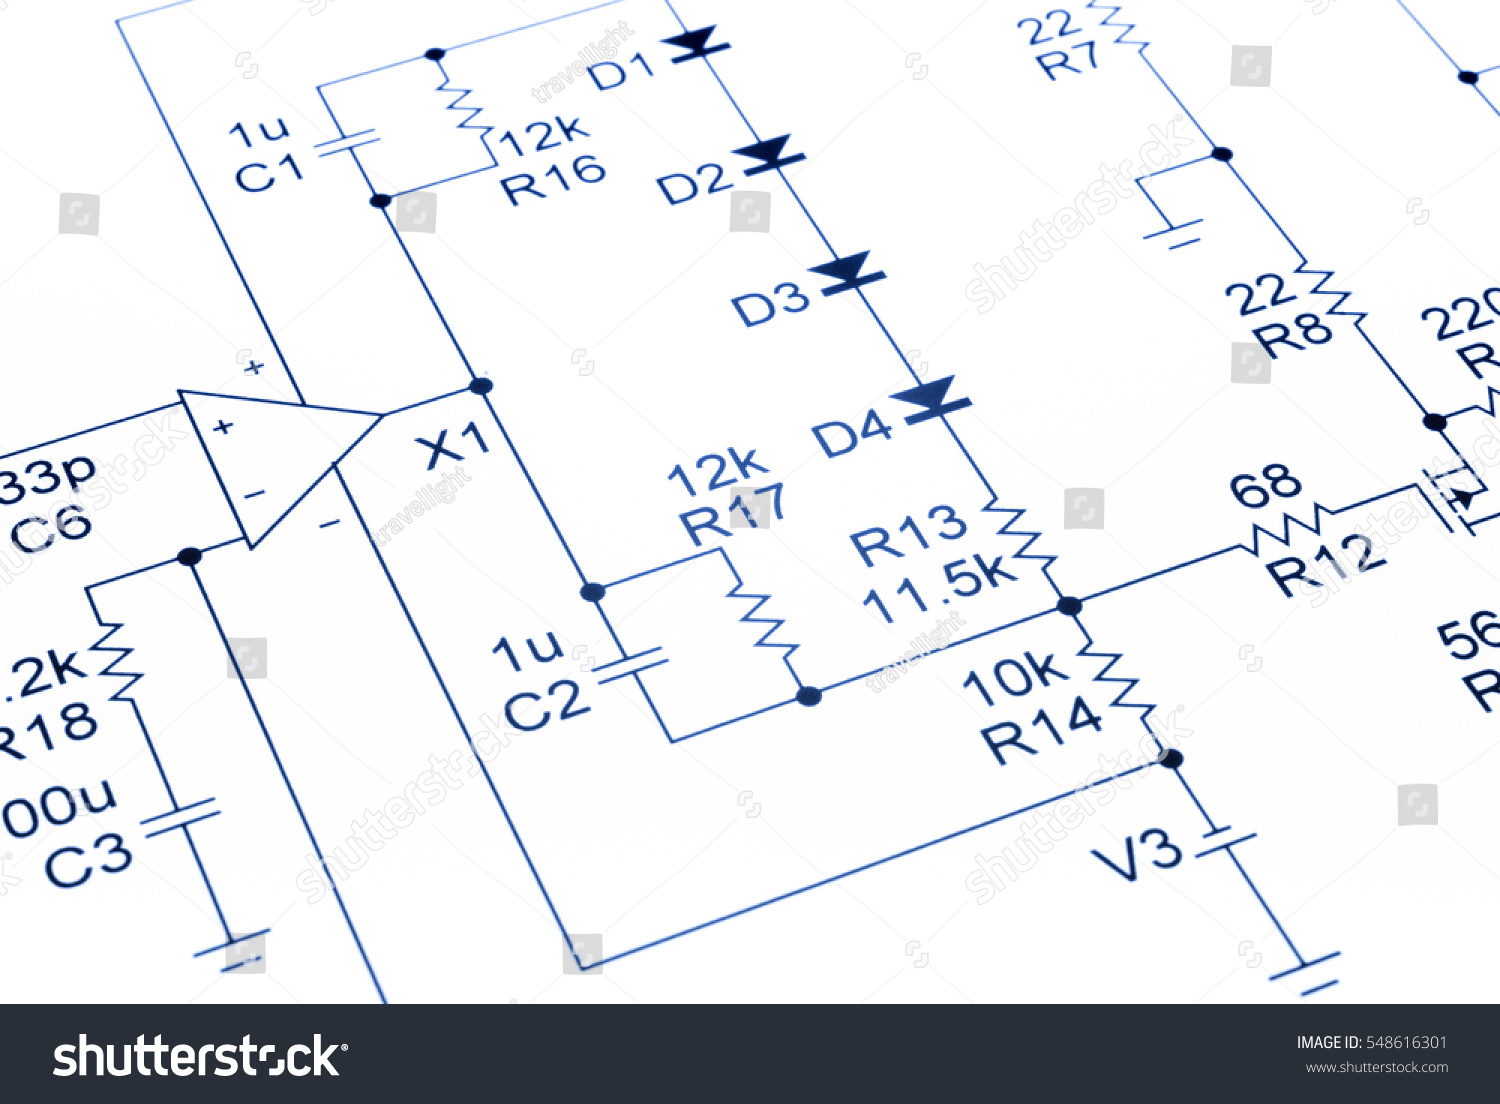 Electronic Circuit Diagram Free Introduction To Electrical Wiring Software Circuits Blue Our Own Stock Photo Royalty Rh Shutterstock Com